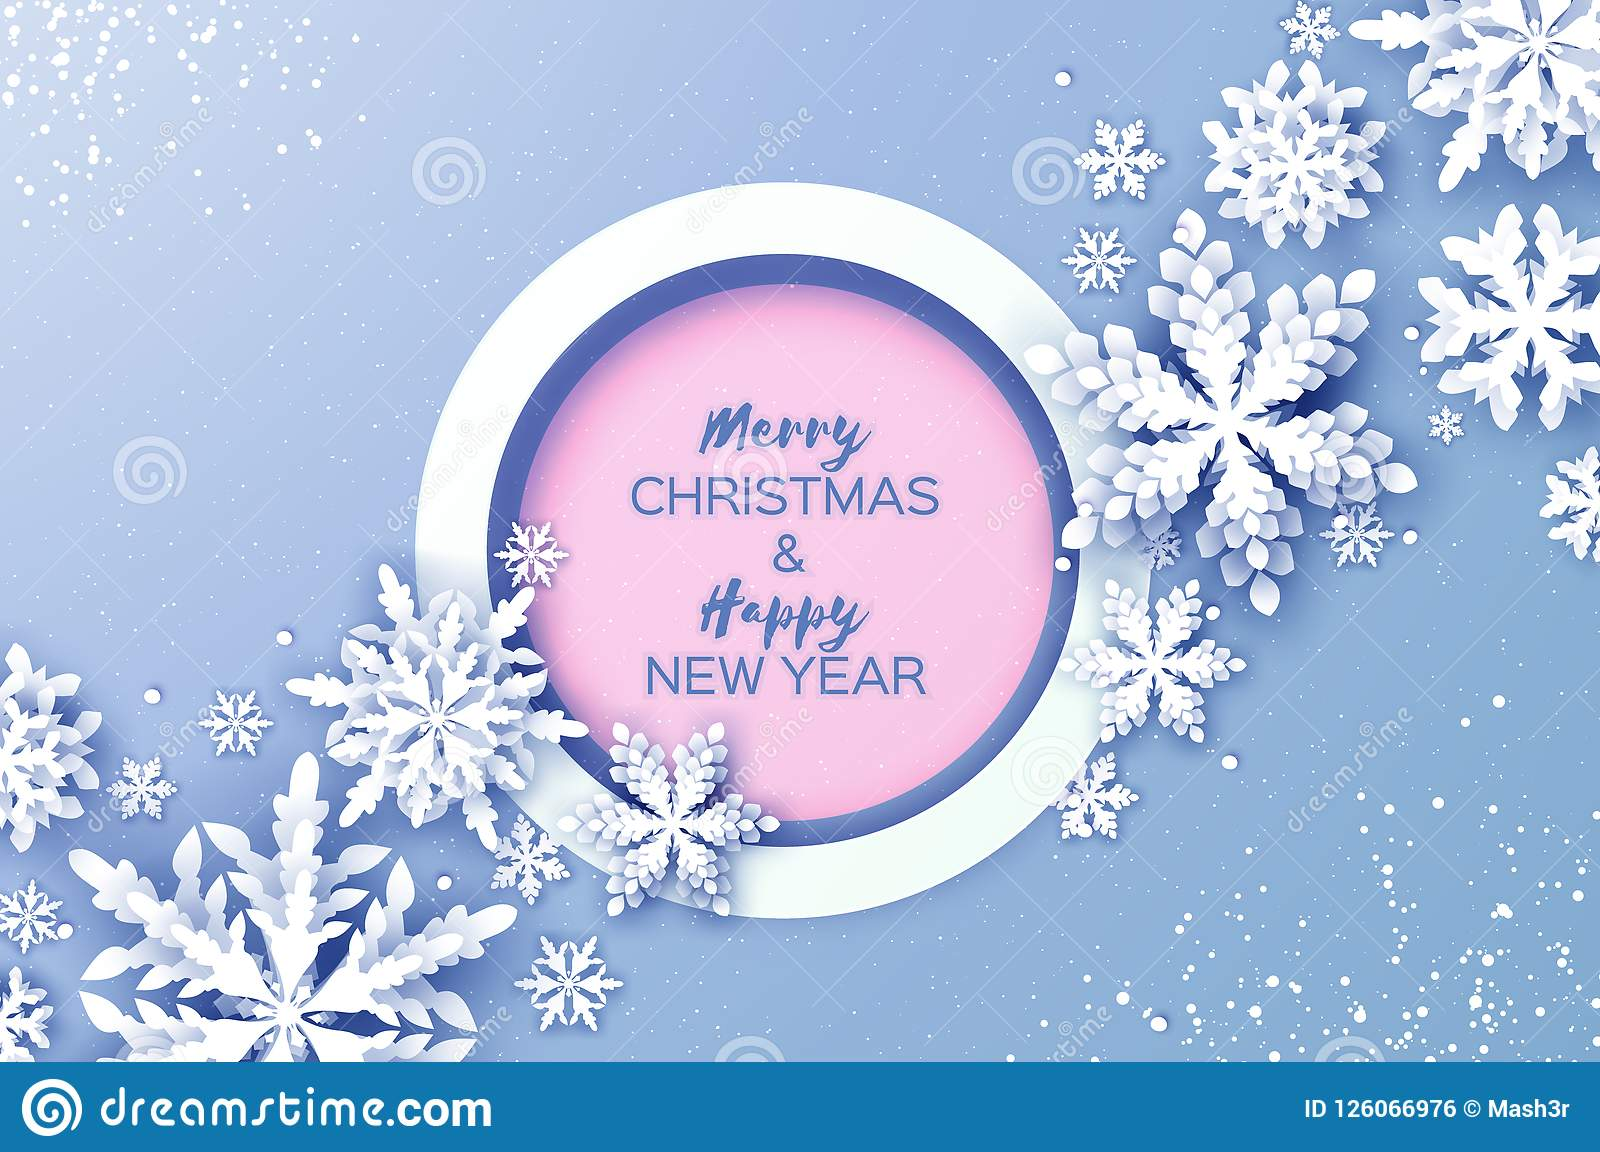 Merry christmas and happy new year greetings card white paper cut download merry christmas and happy new year greetings card white paper cut snowflakes origami m4hsunfo